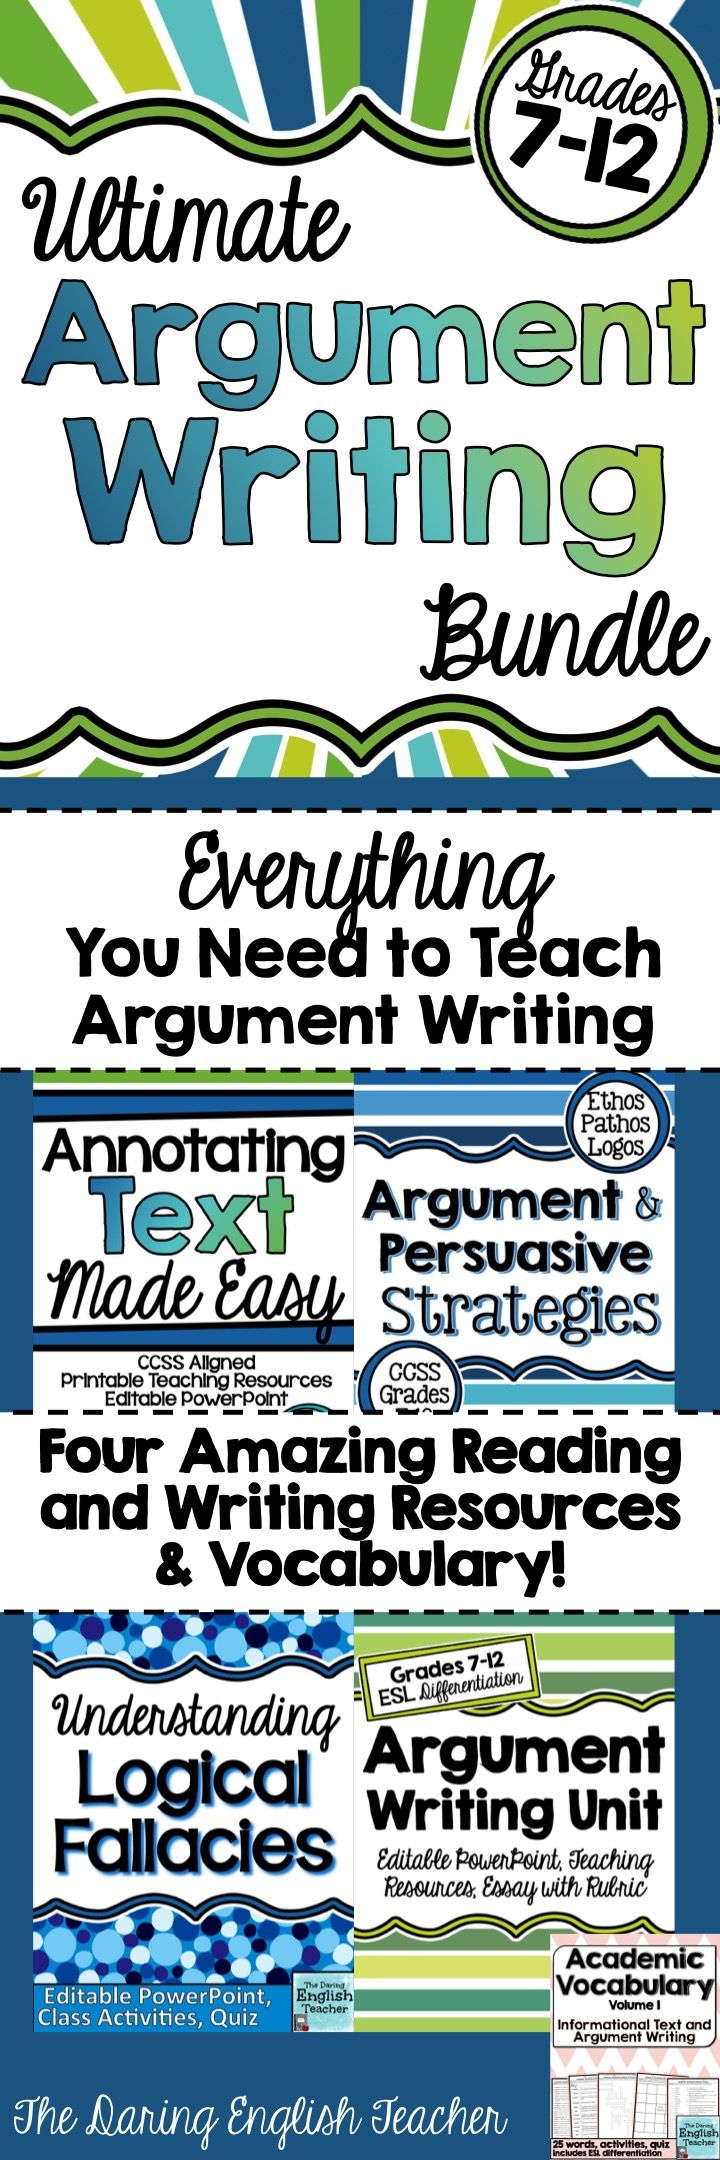 best ideas about argumentative writing thesis the ultimate bundle for argument writing includes teaching resources editable powerpoint presentations and